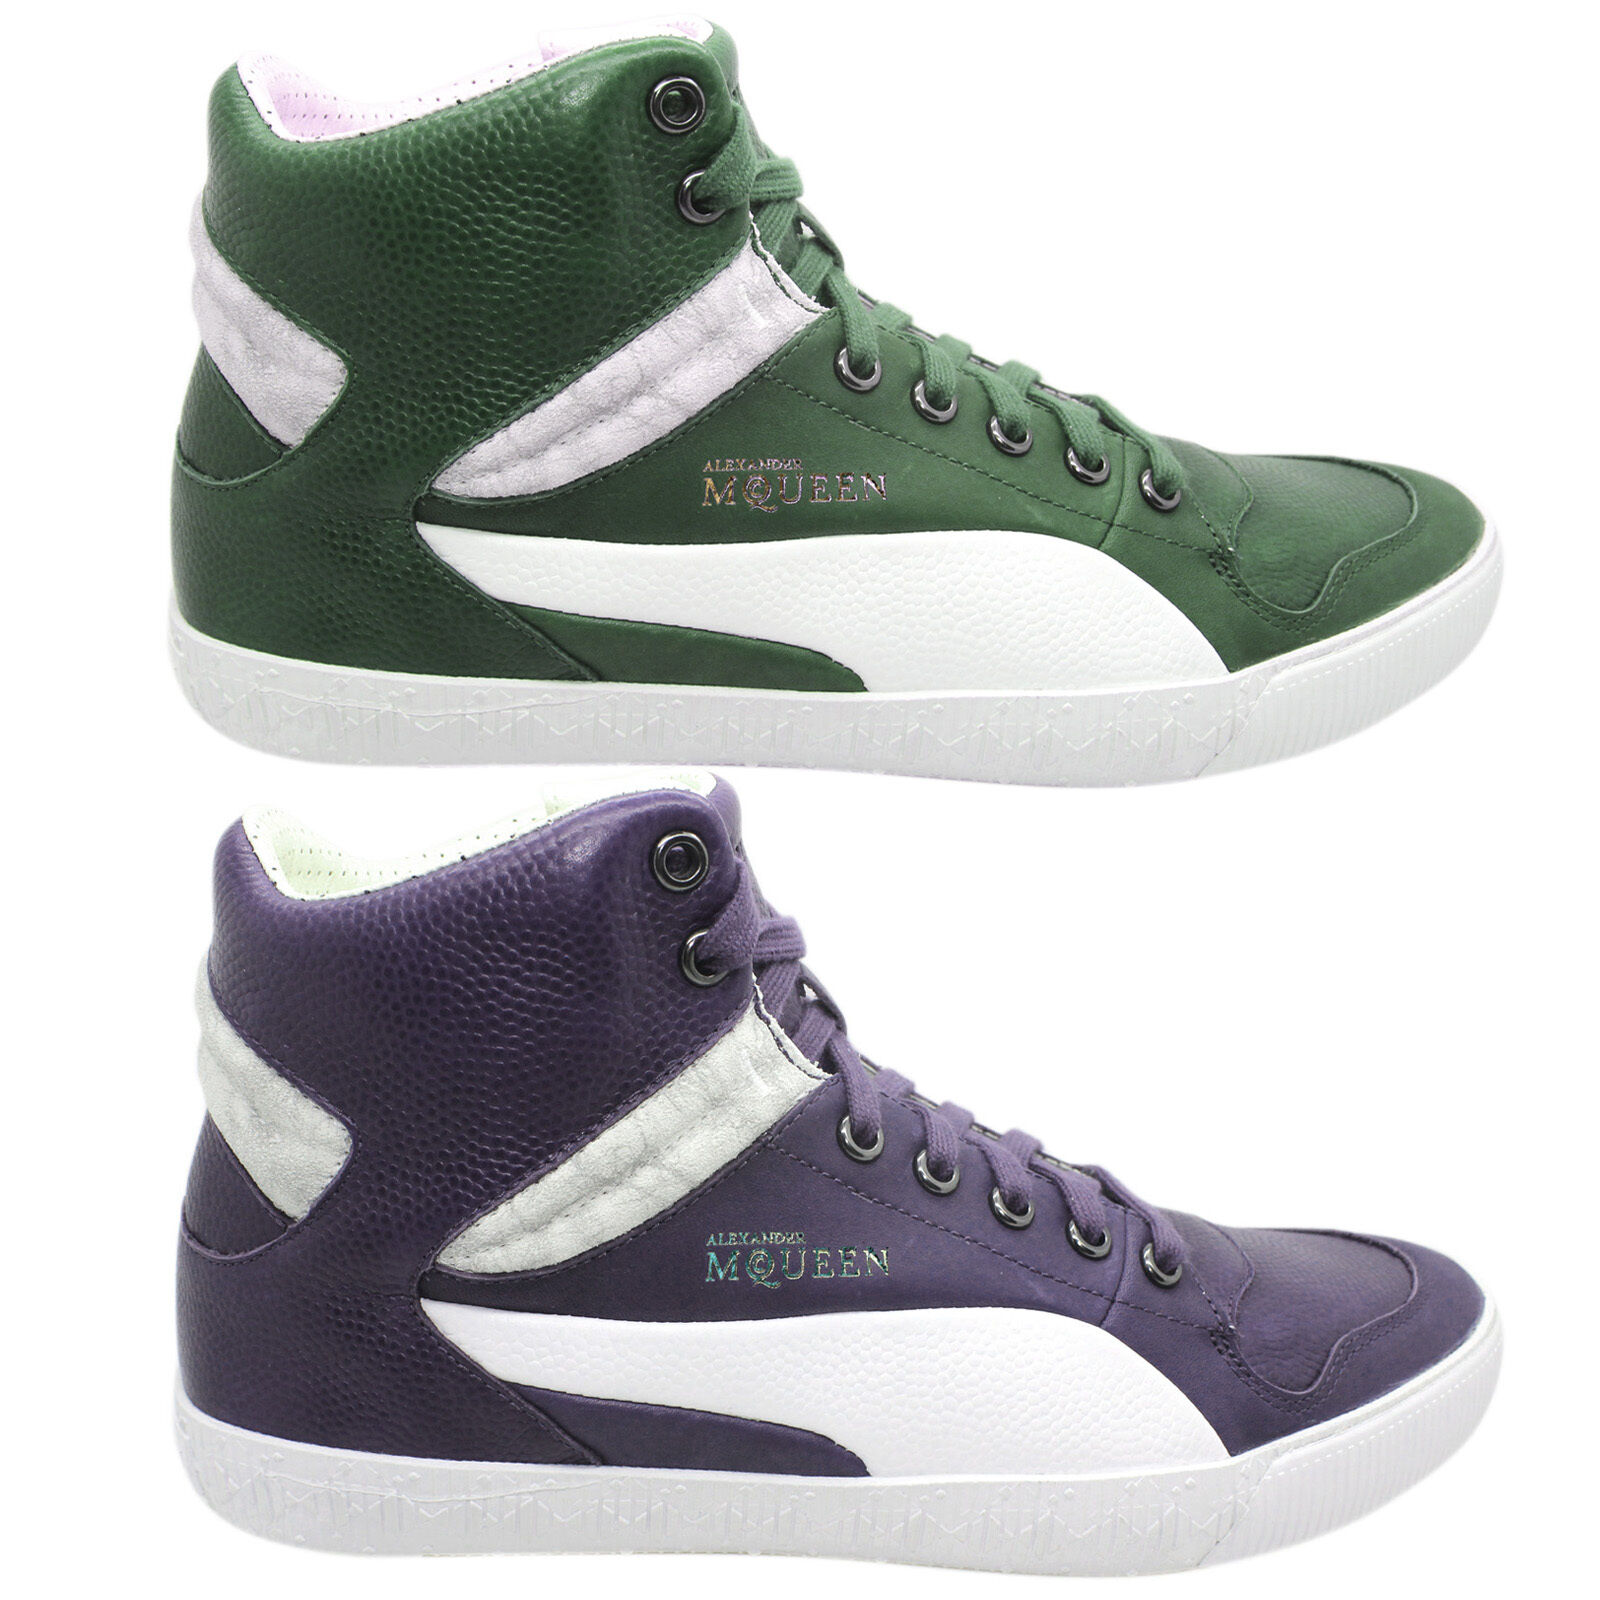 Puma AMQ Street Climb 3 Mid Trainers Mens Leather 355916 03 Price reduction 04 Price reduction